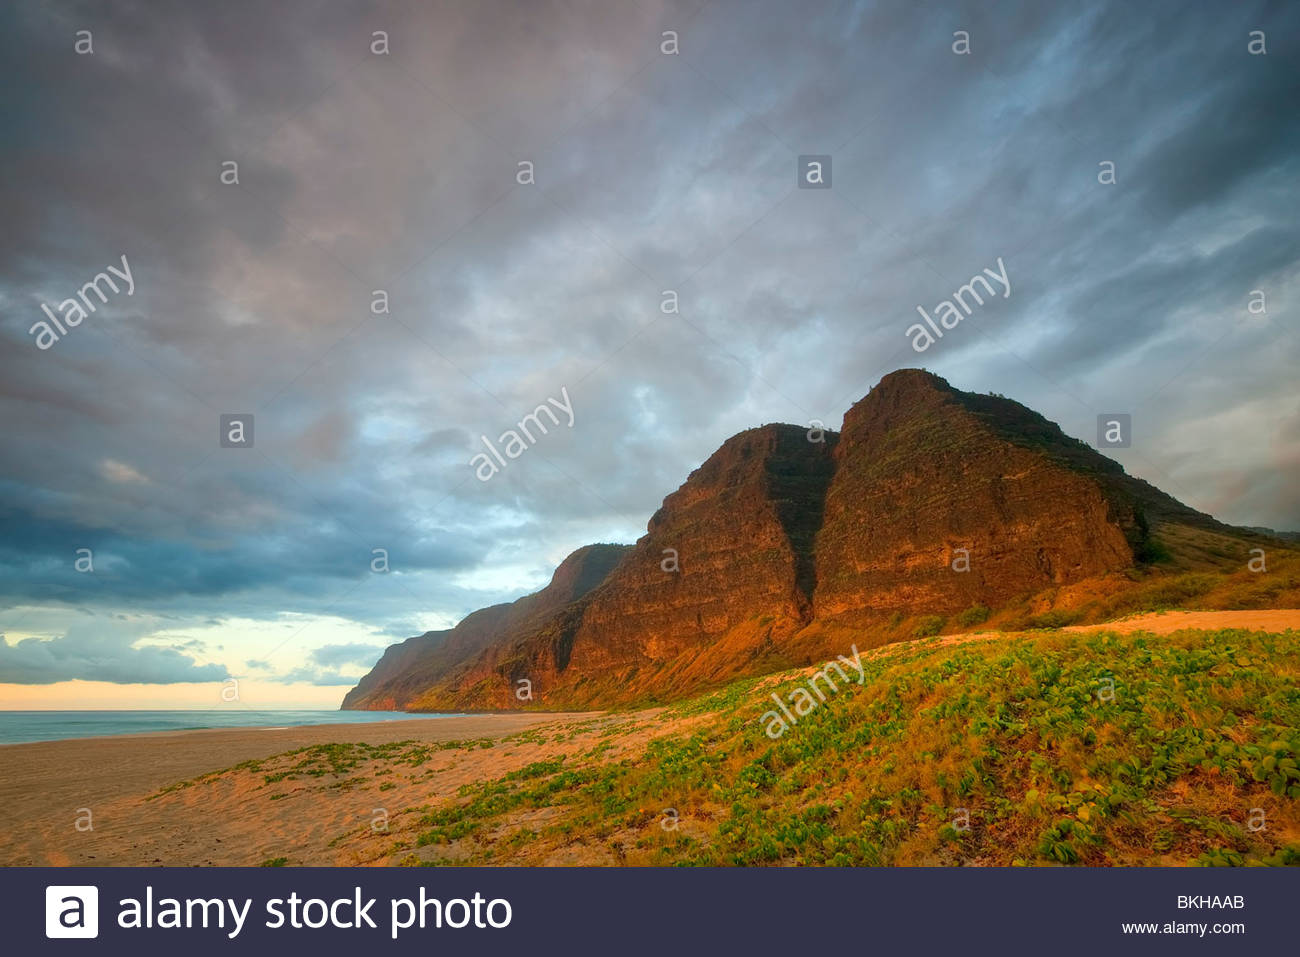 The setting sun lights up several tall mountains above Barking Sands beach in Polihale State Park, Kauai, Hawaii. - Stock Image